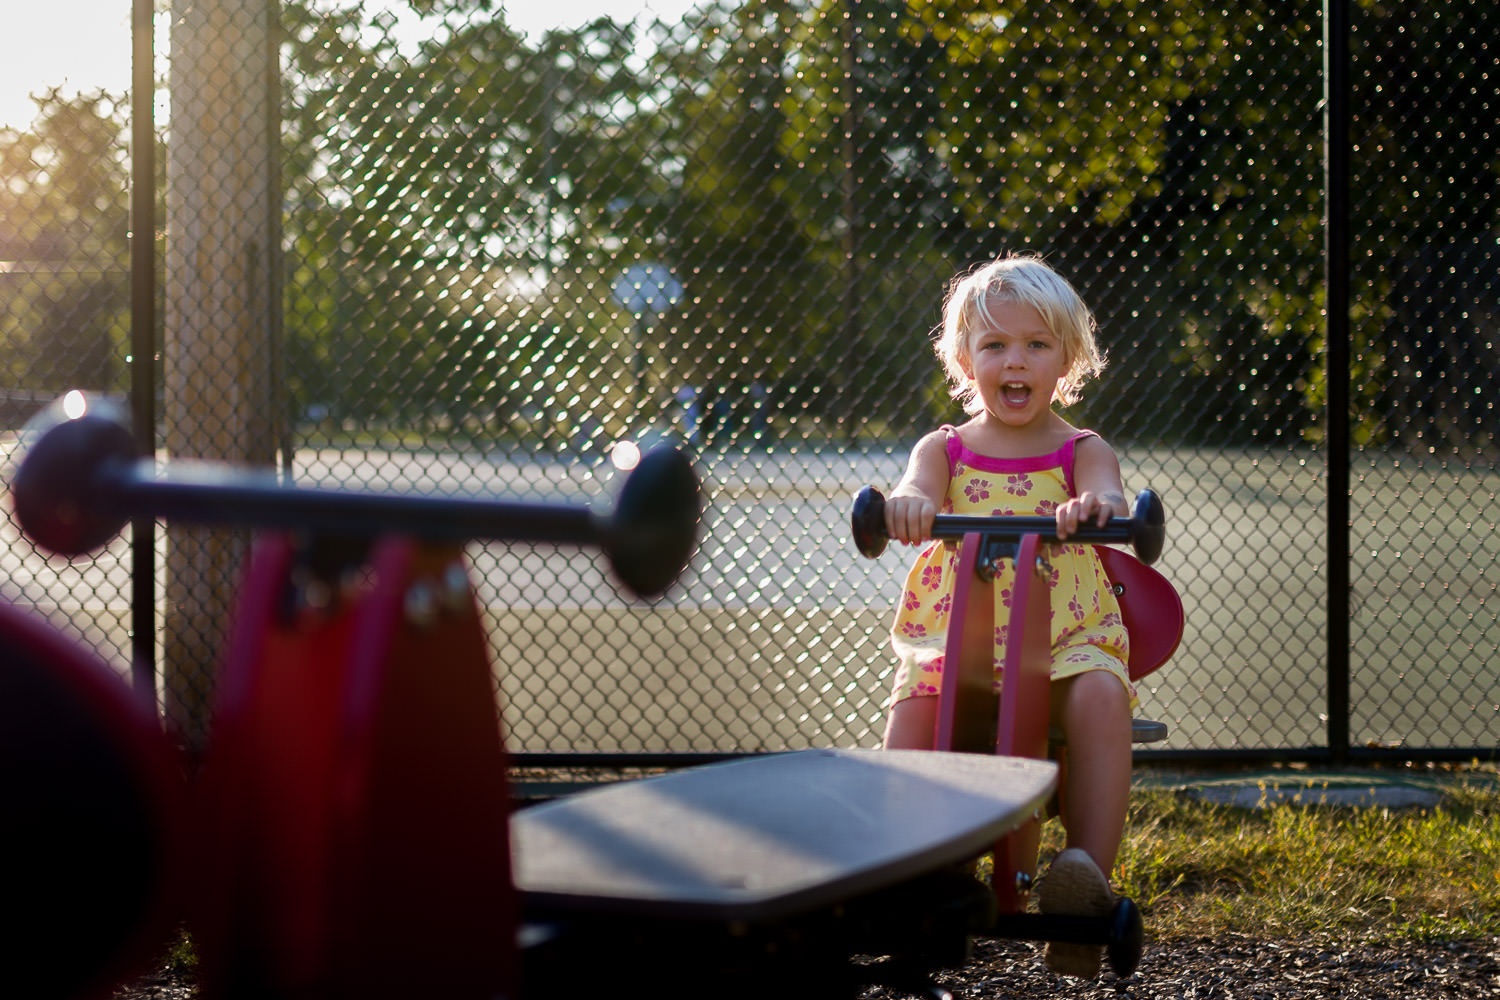 candid photo of girl on seasaw in New Jersey park